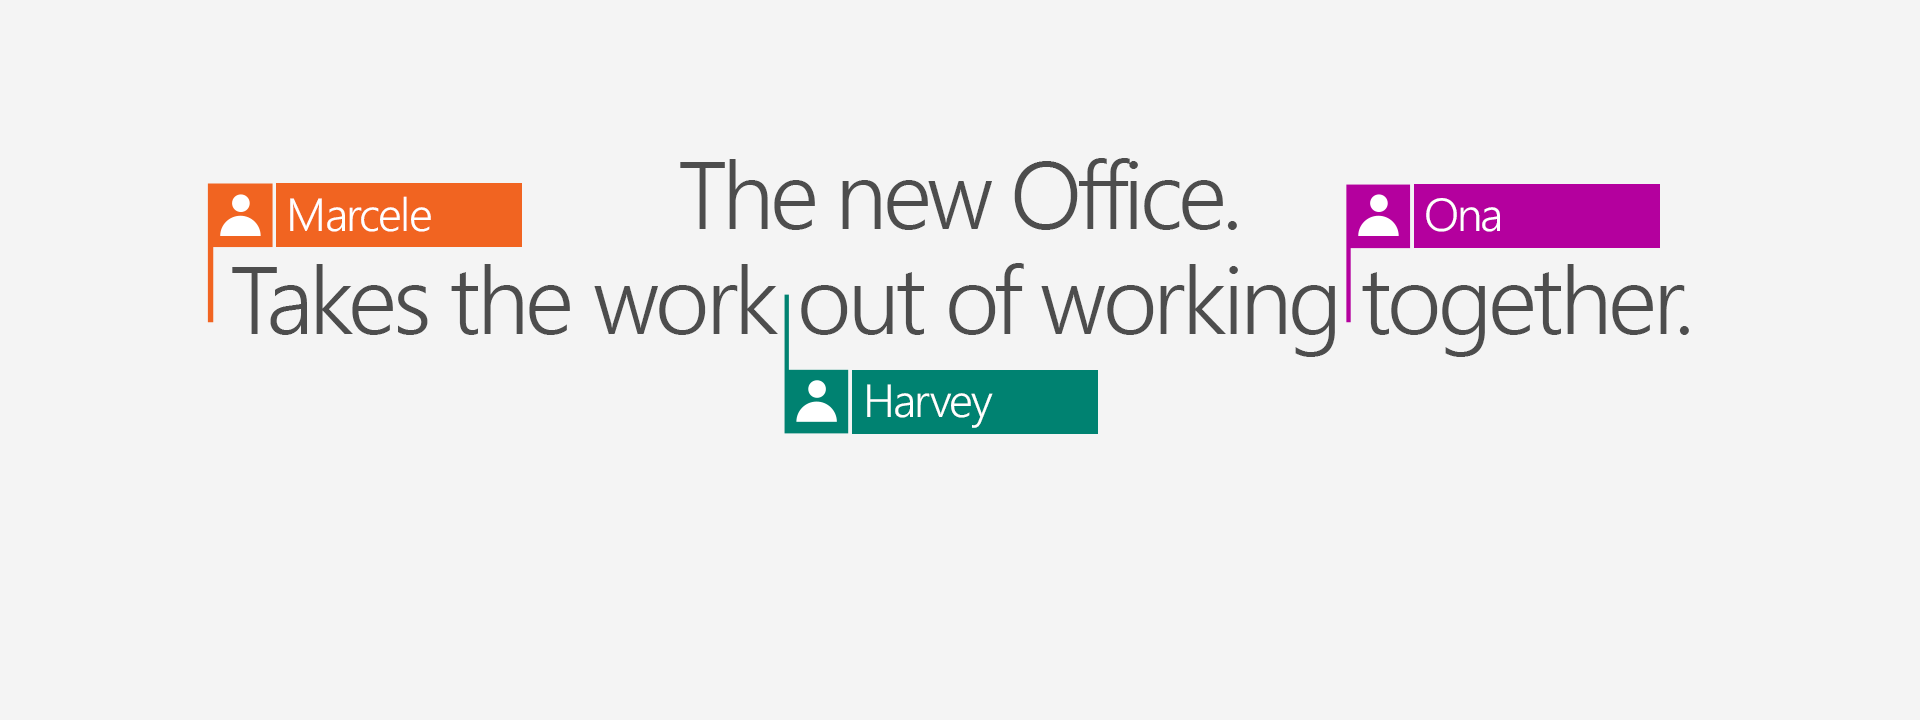 Buy Office 365 to get the new 2016 apps.